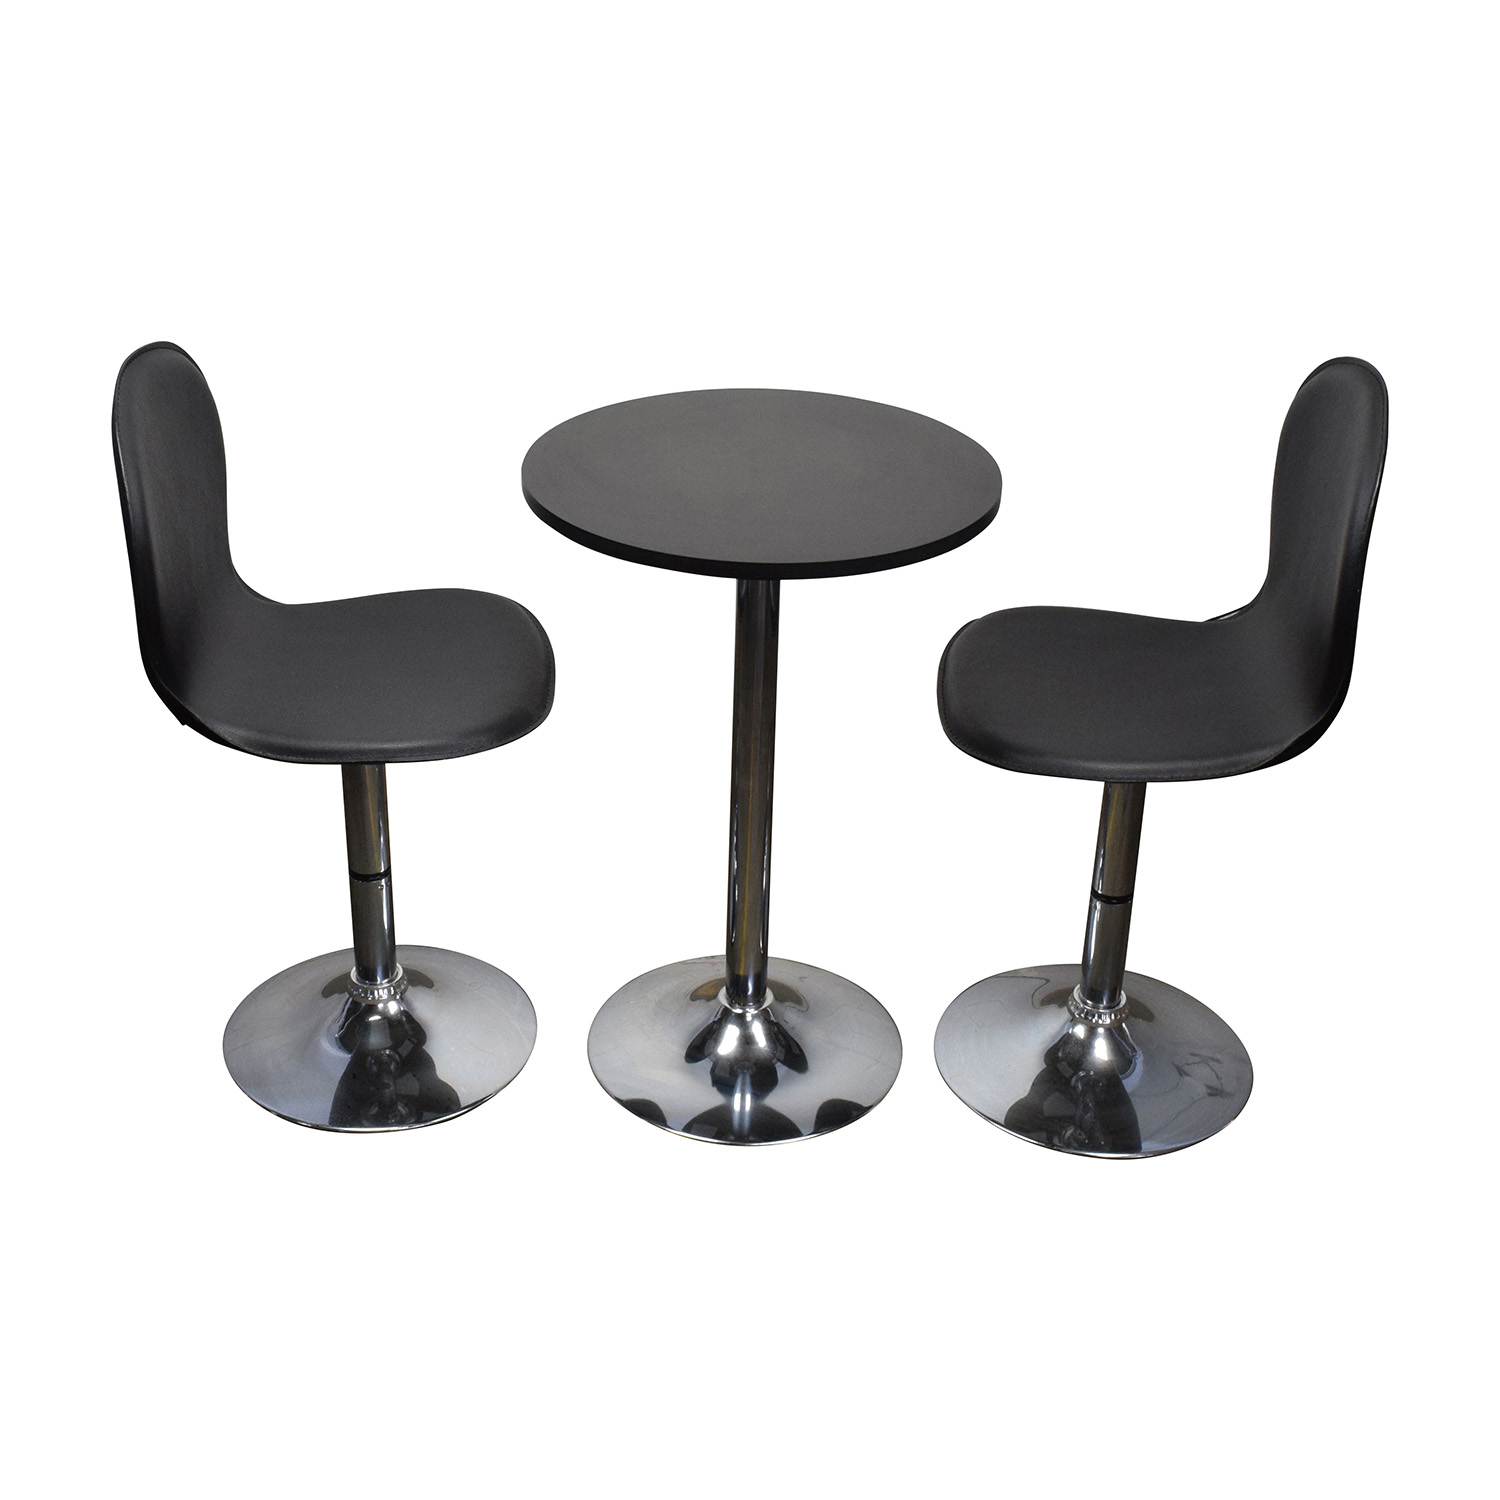 Leather Chairs Target 79 Off Target Target Cafe Table And Leather Chairs Tables